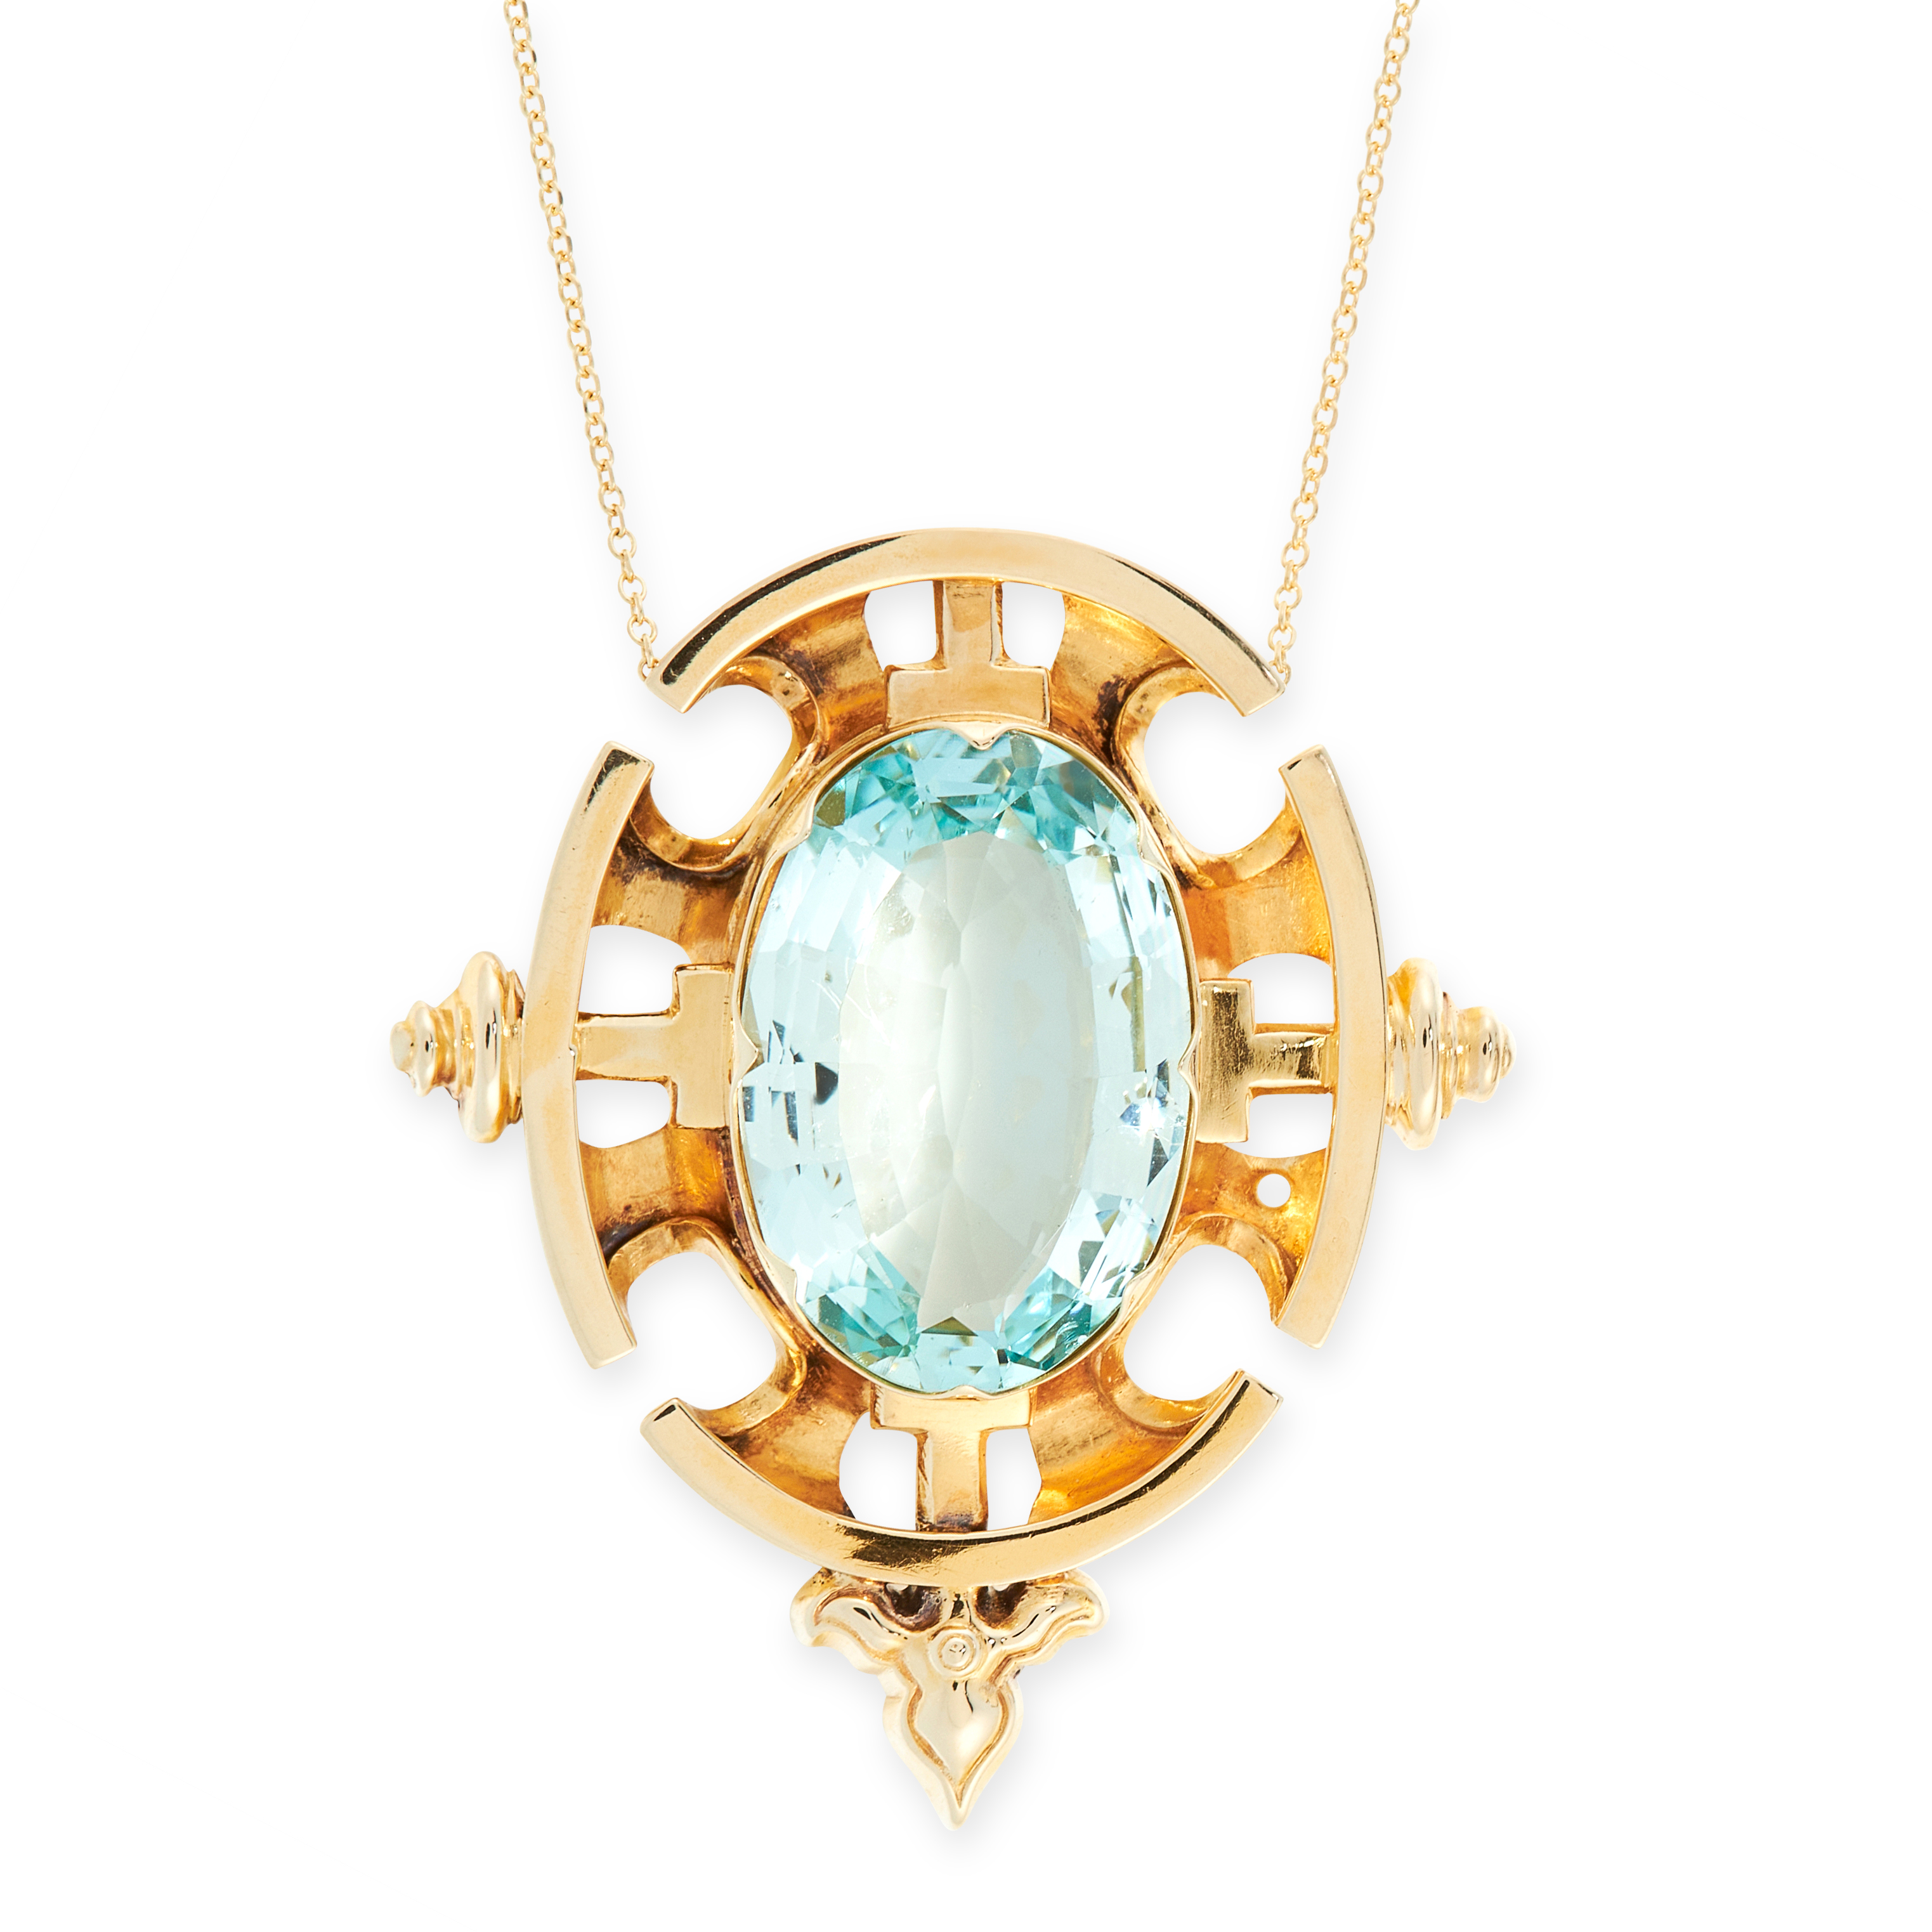 AN AQUAMARINE PENDANT NECKLACE the pendant set with an oval cut aquamarine of 8.46 carats, within an